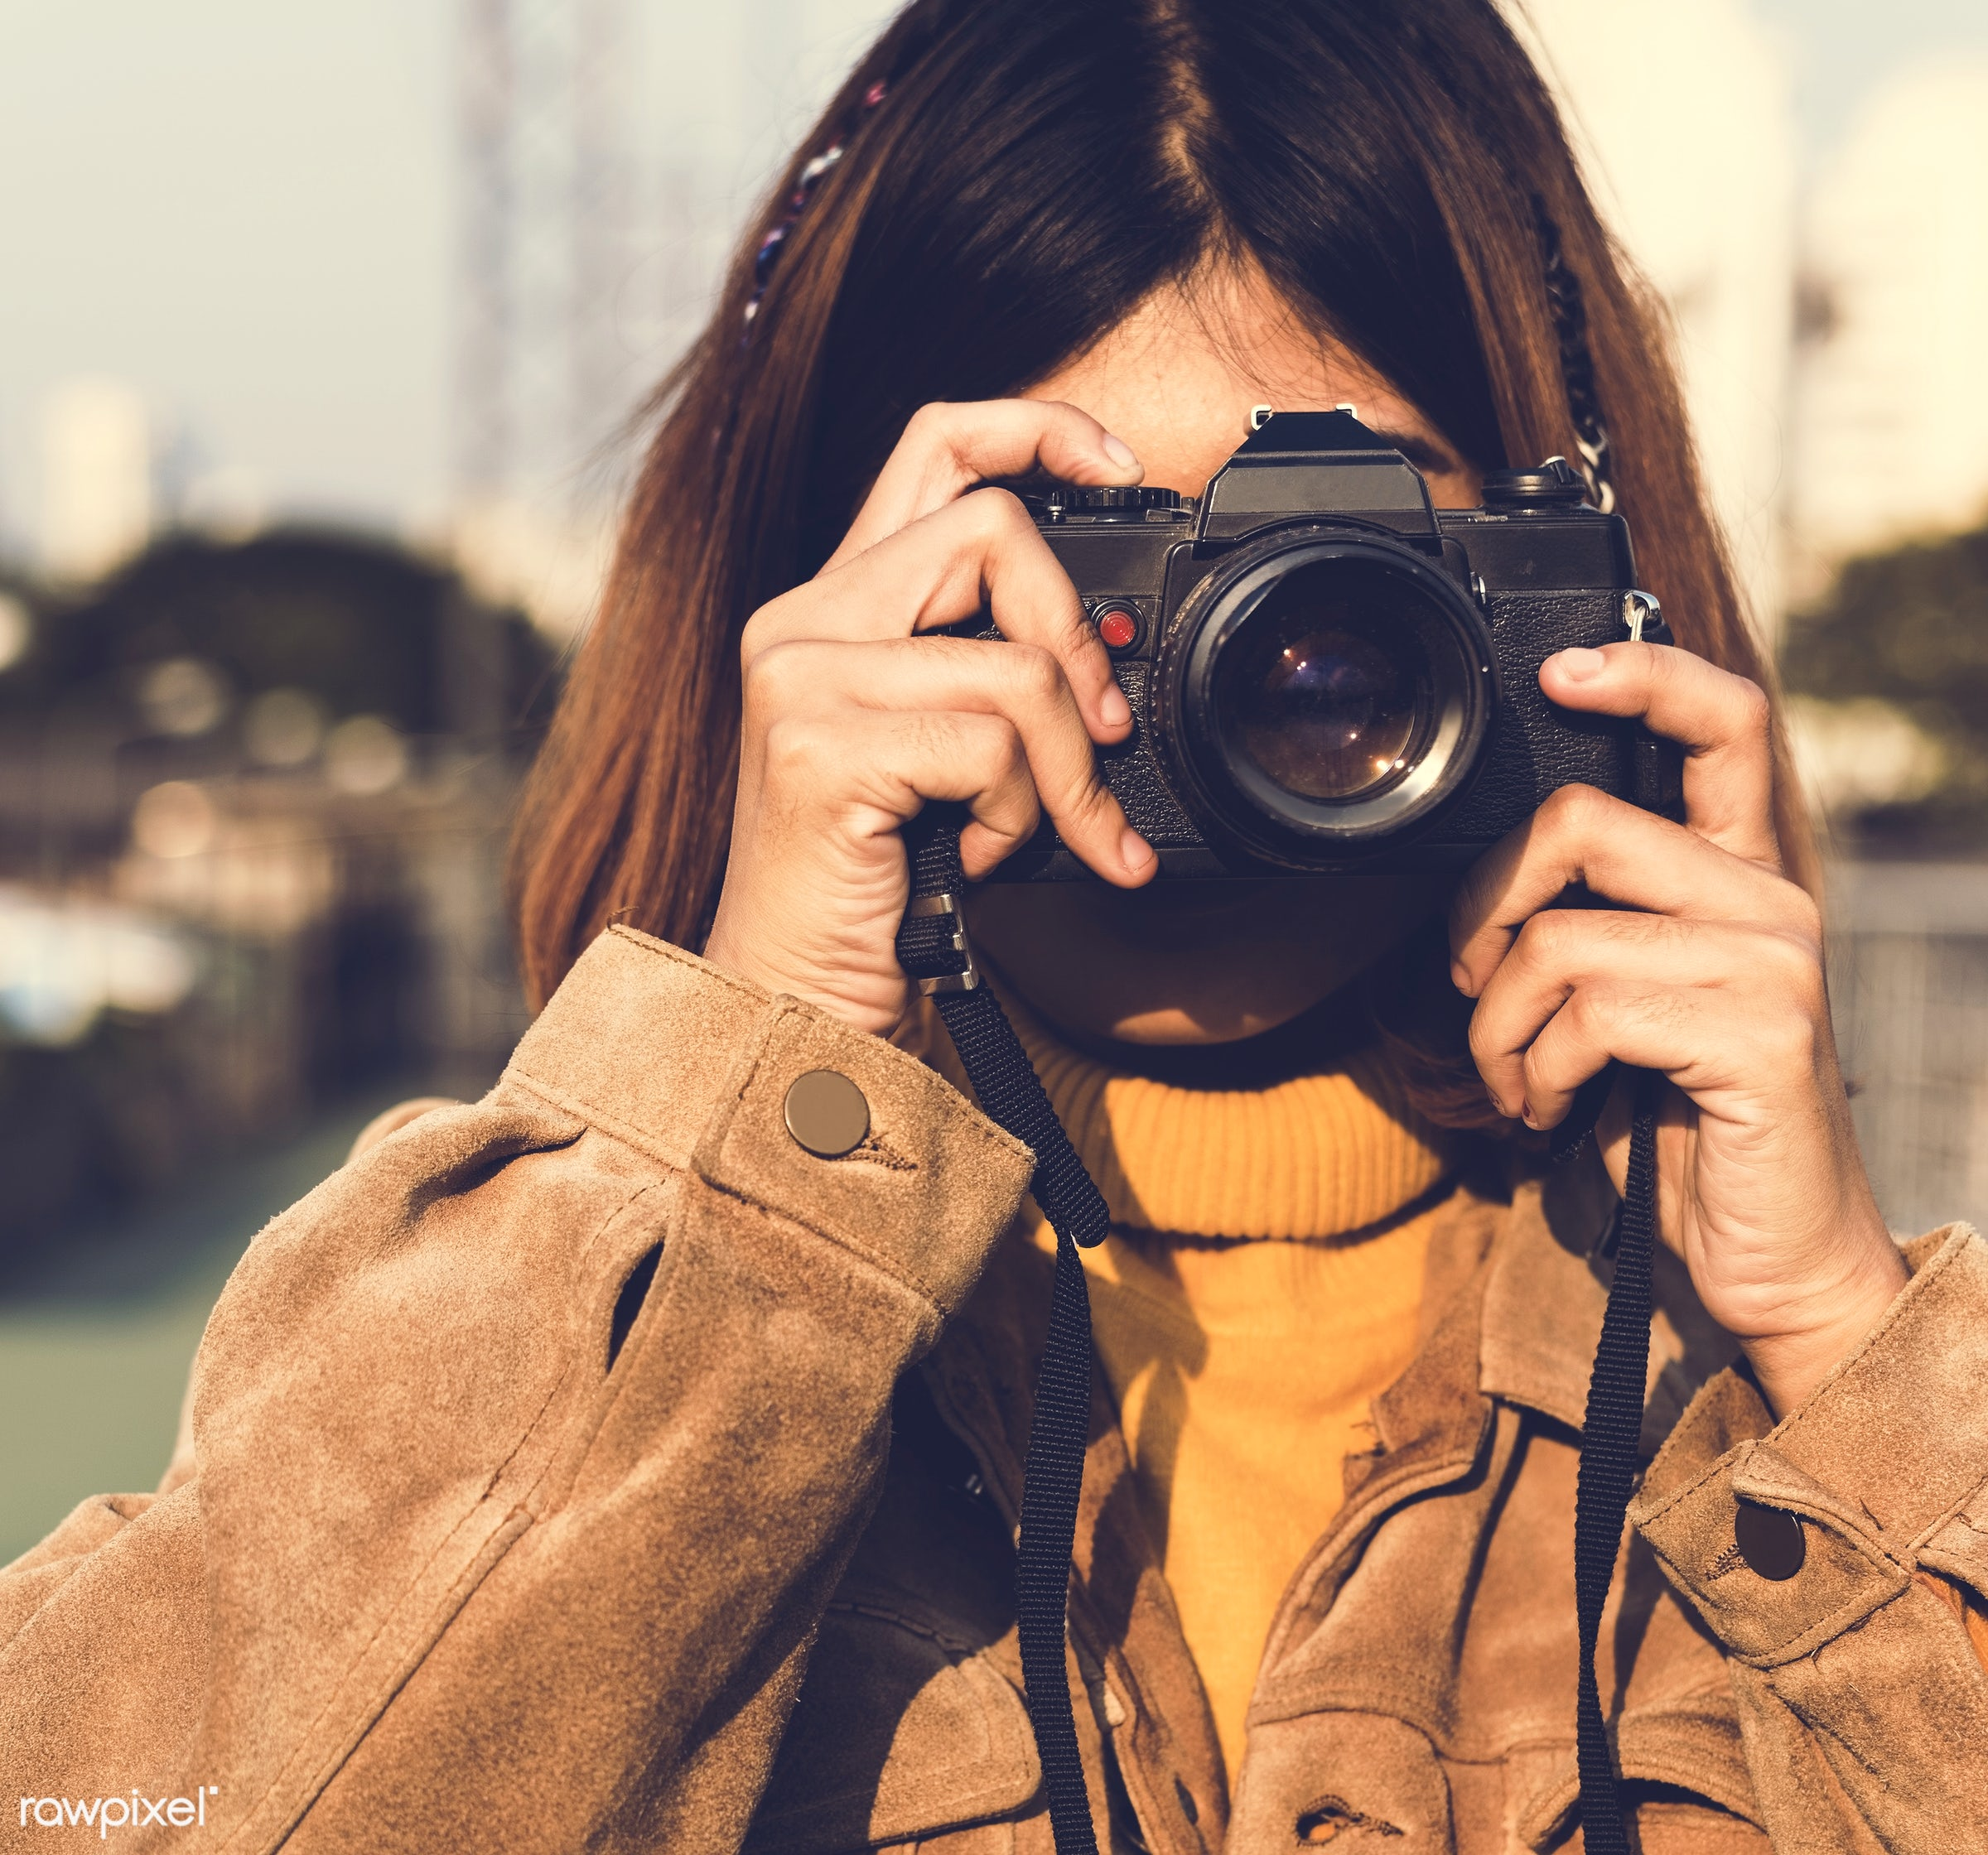 girl, woman, camera, photography, photographer, hobby, city, urban, taking, photo, picture, person